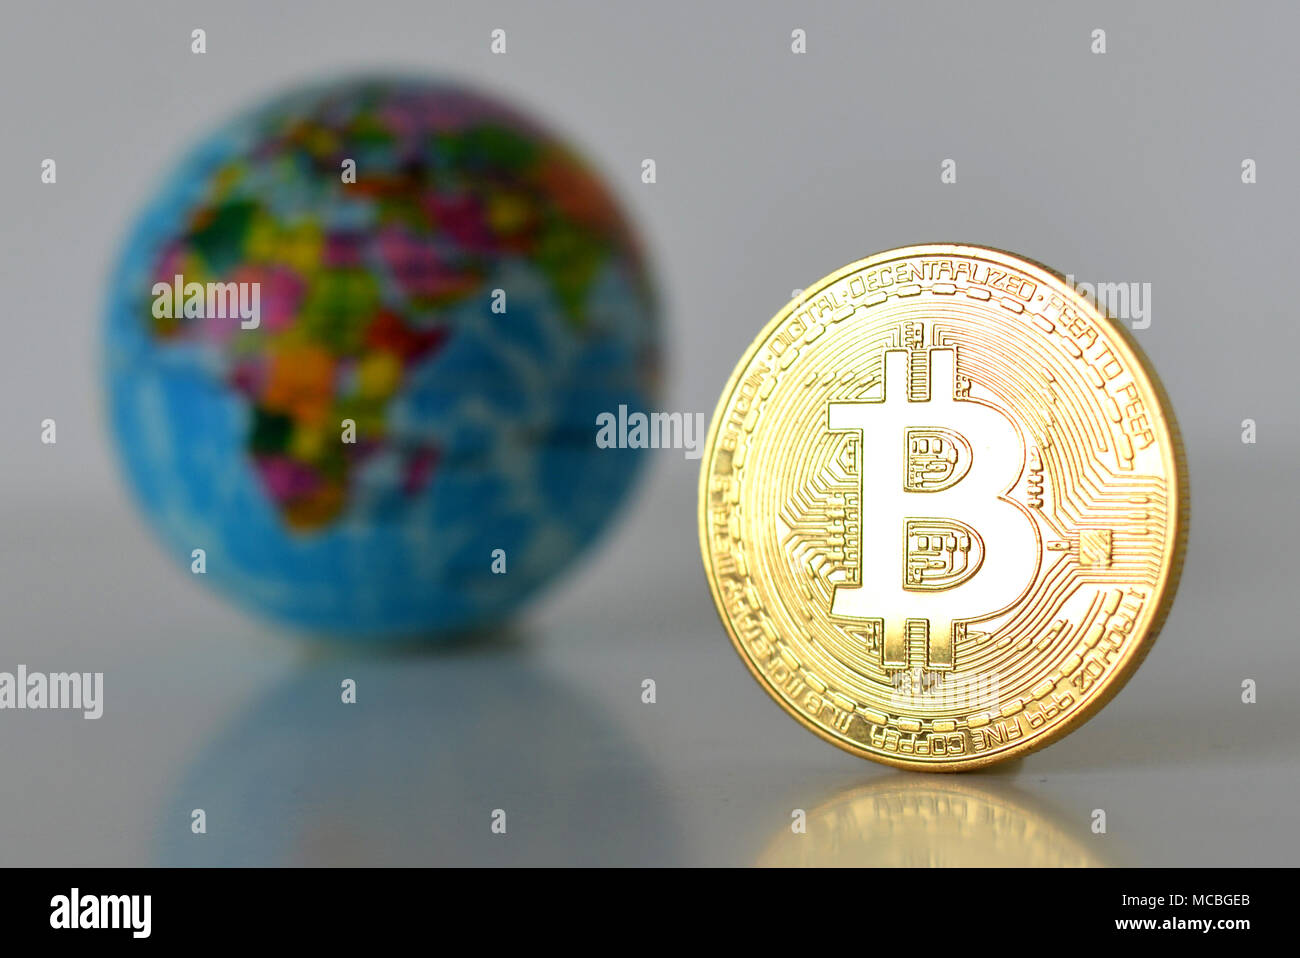 are bitcoins the new world currency